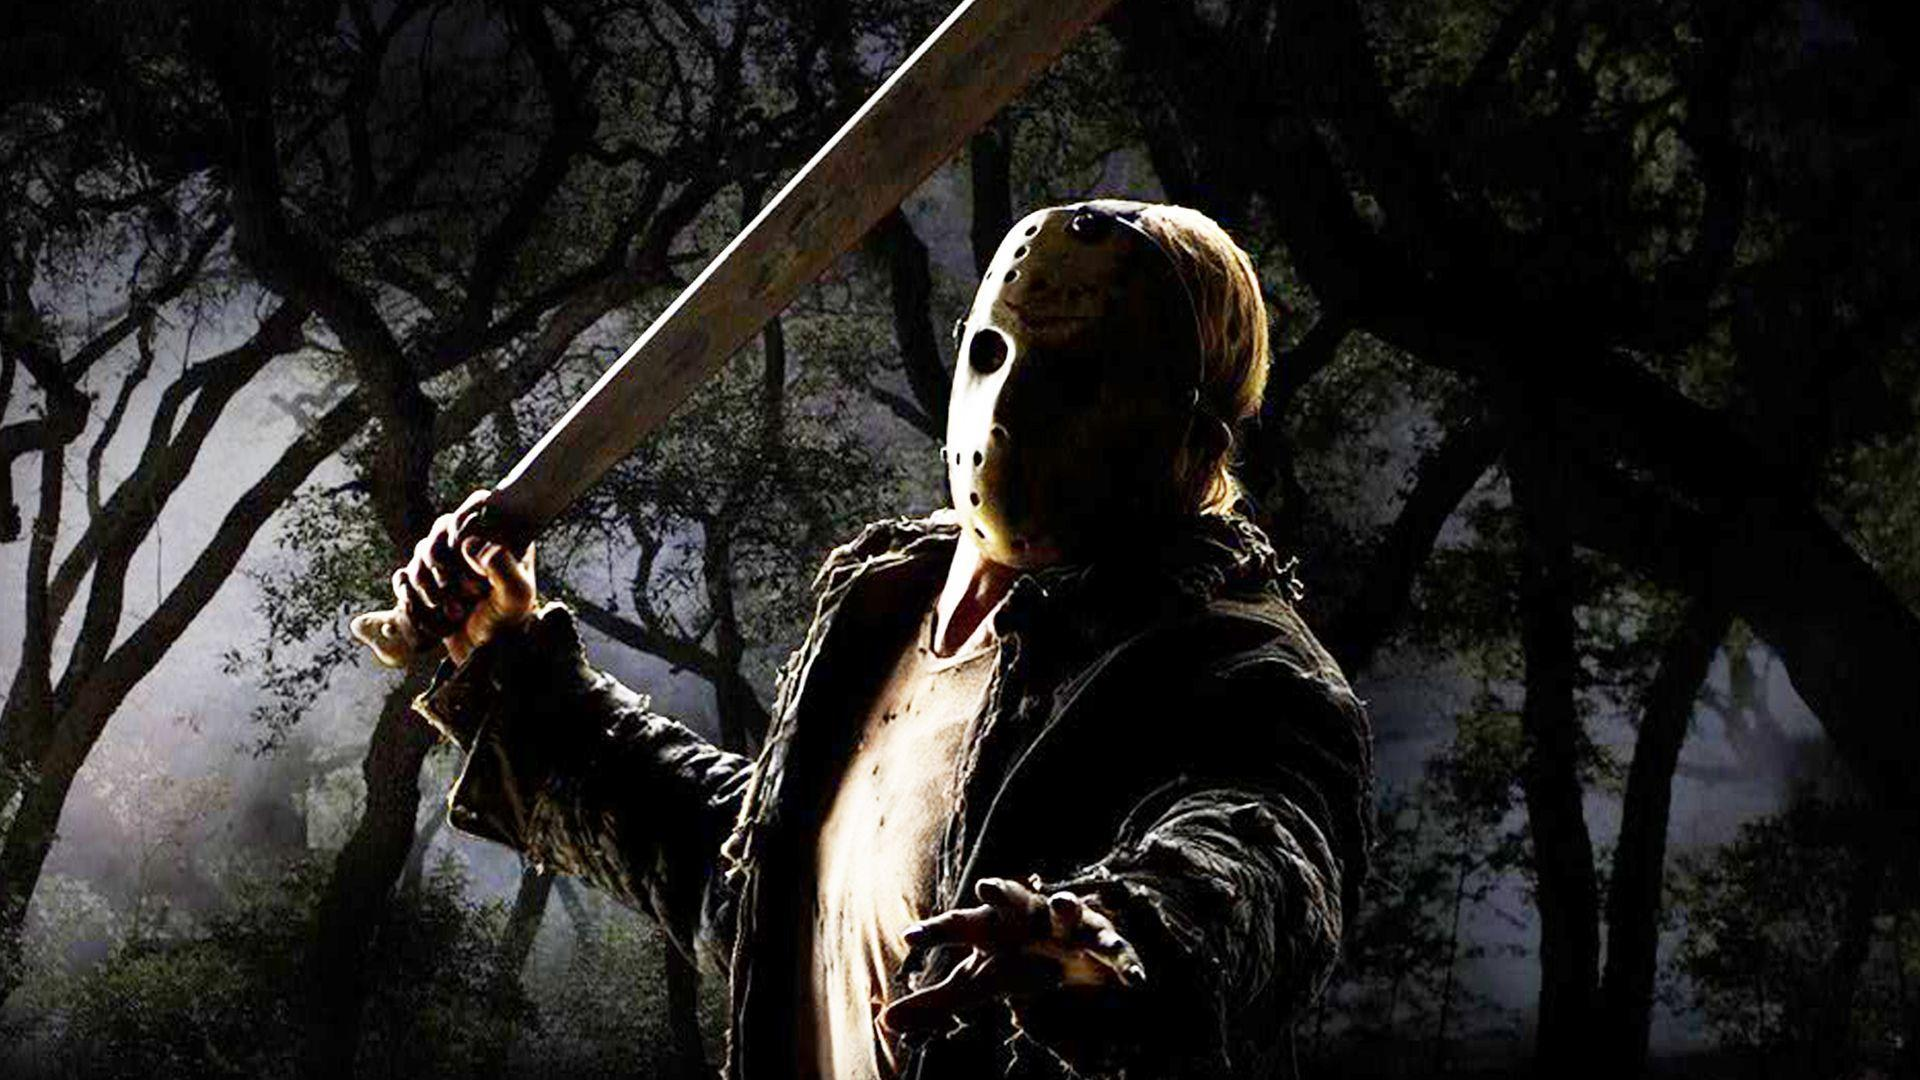 Wallpapers of Friday the 13th – Free wallpapers download